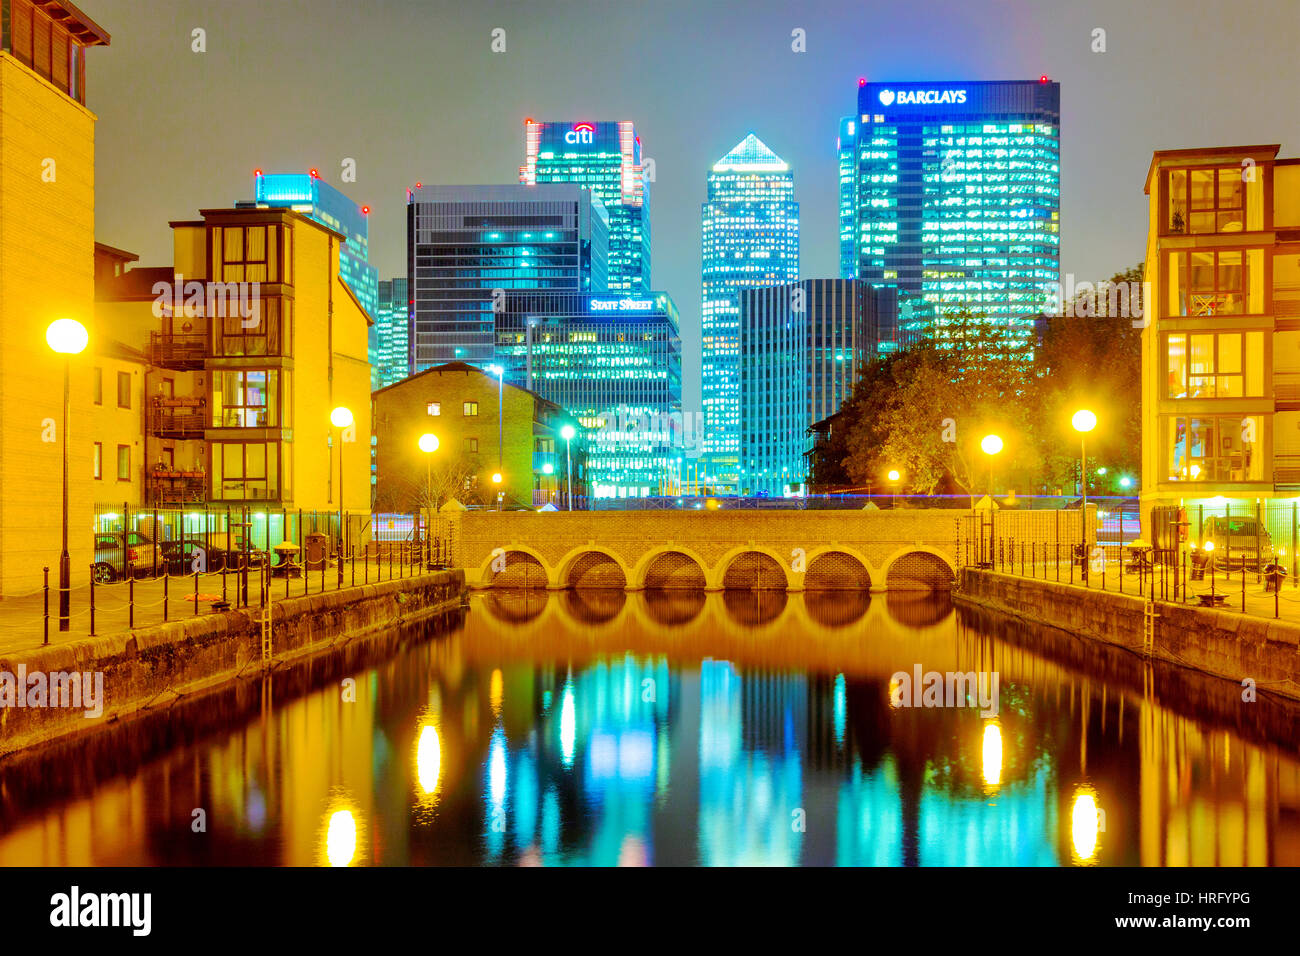 LONDON - OCTOBER 24: This is a residential area of modern flats within Canary wharf financial district you can see - Stock Image